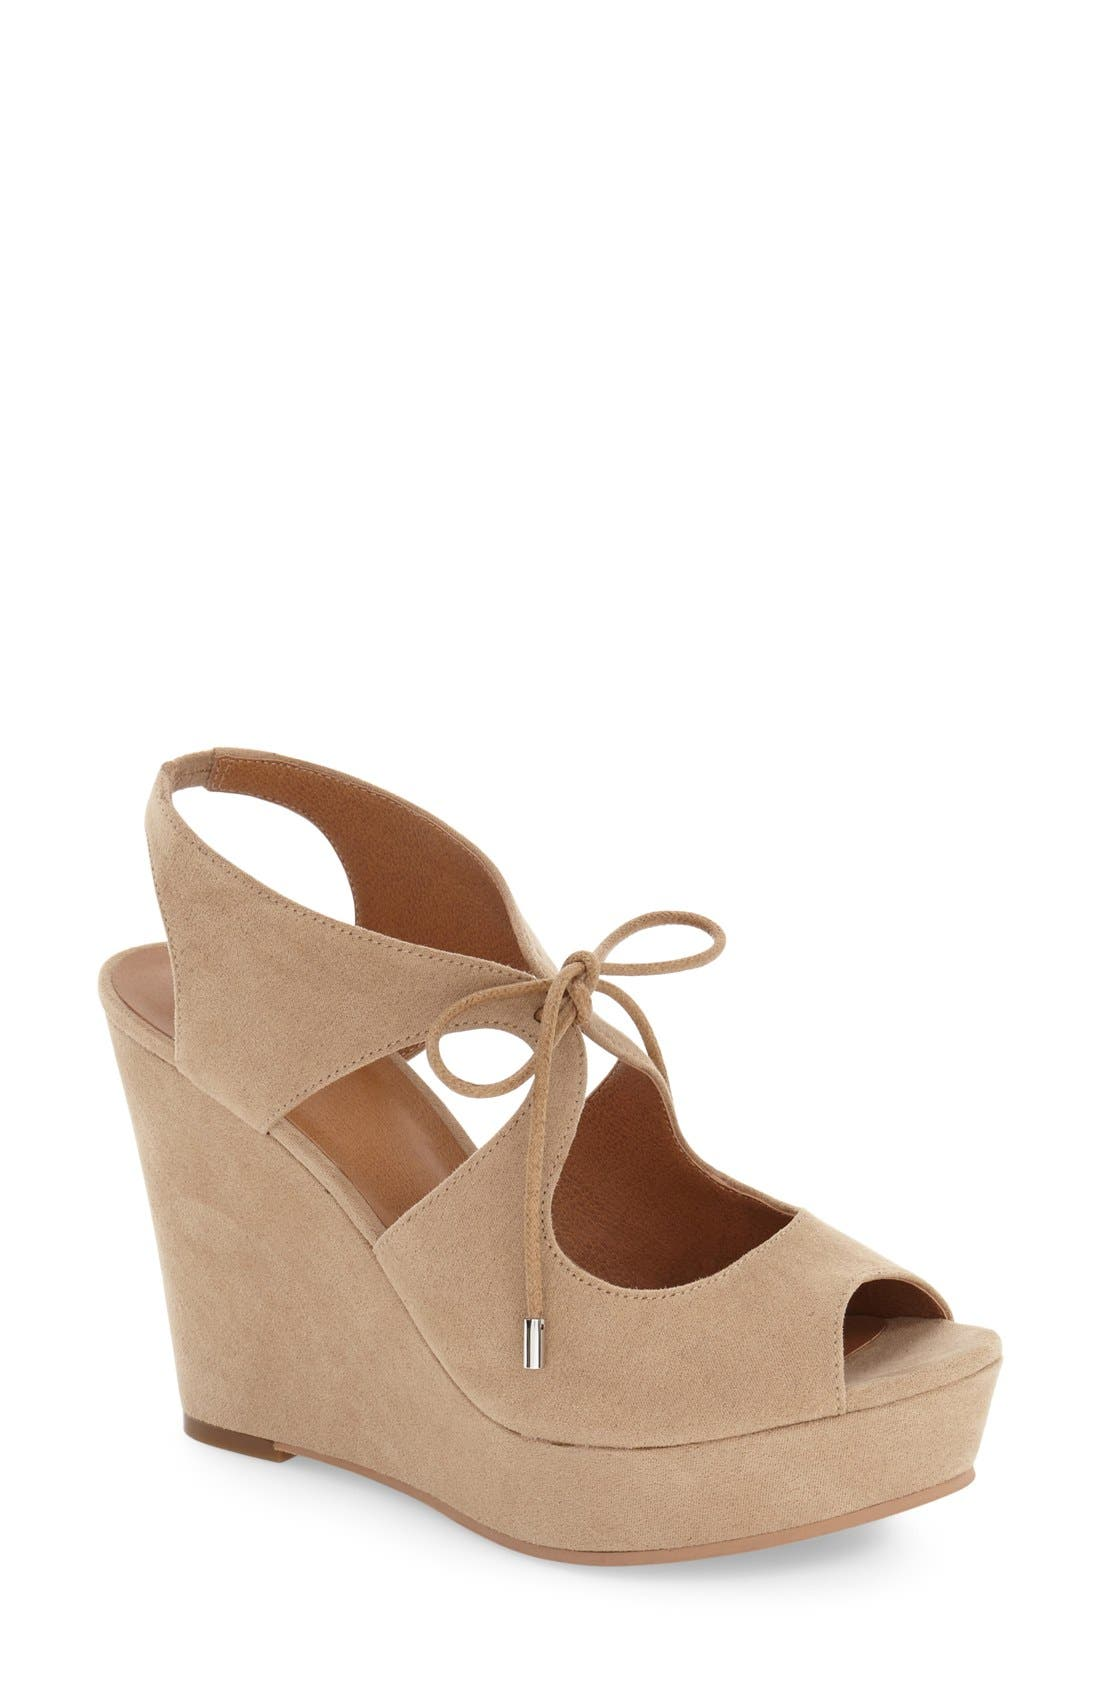 'Solar' Platform Wedge Sandal,                             Main thumbnail 1, color,                             Light Taupe Faux Suede